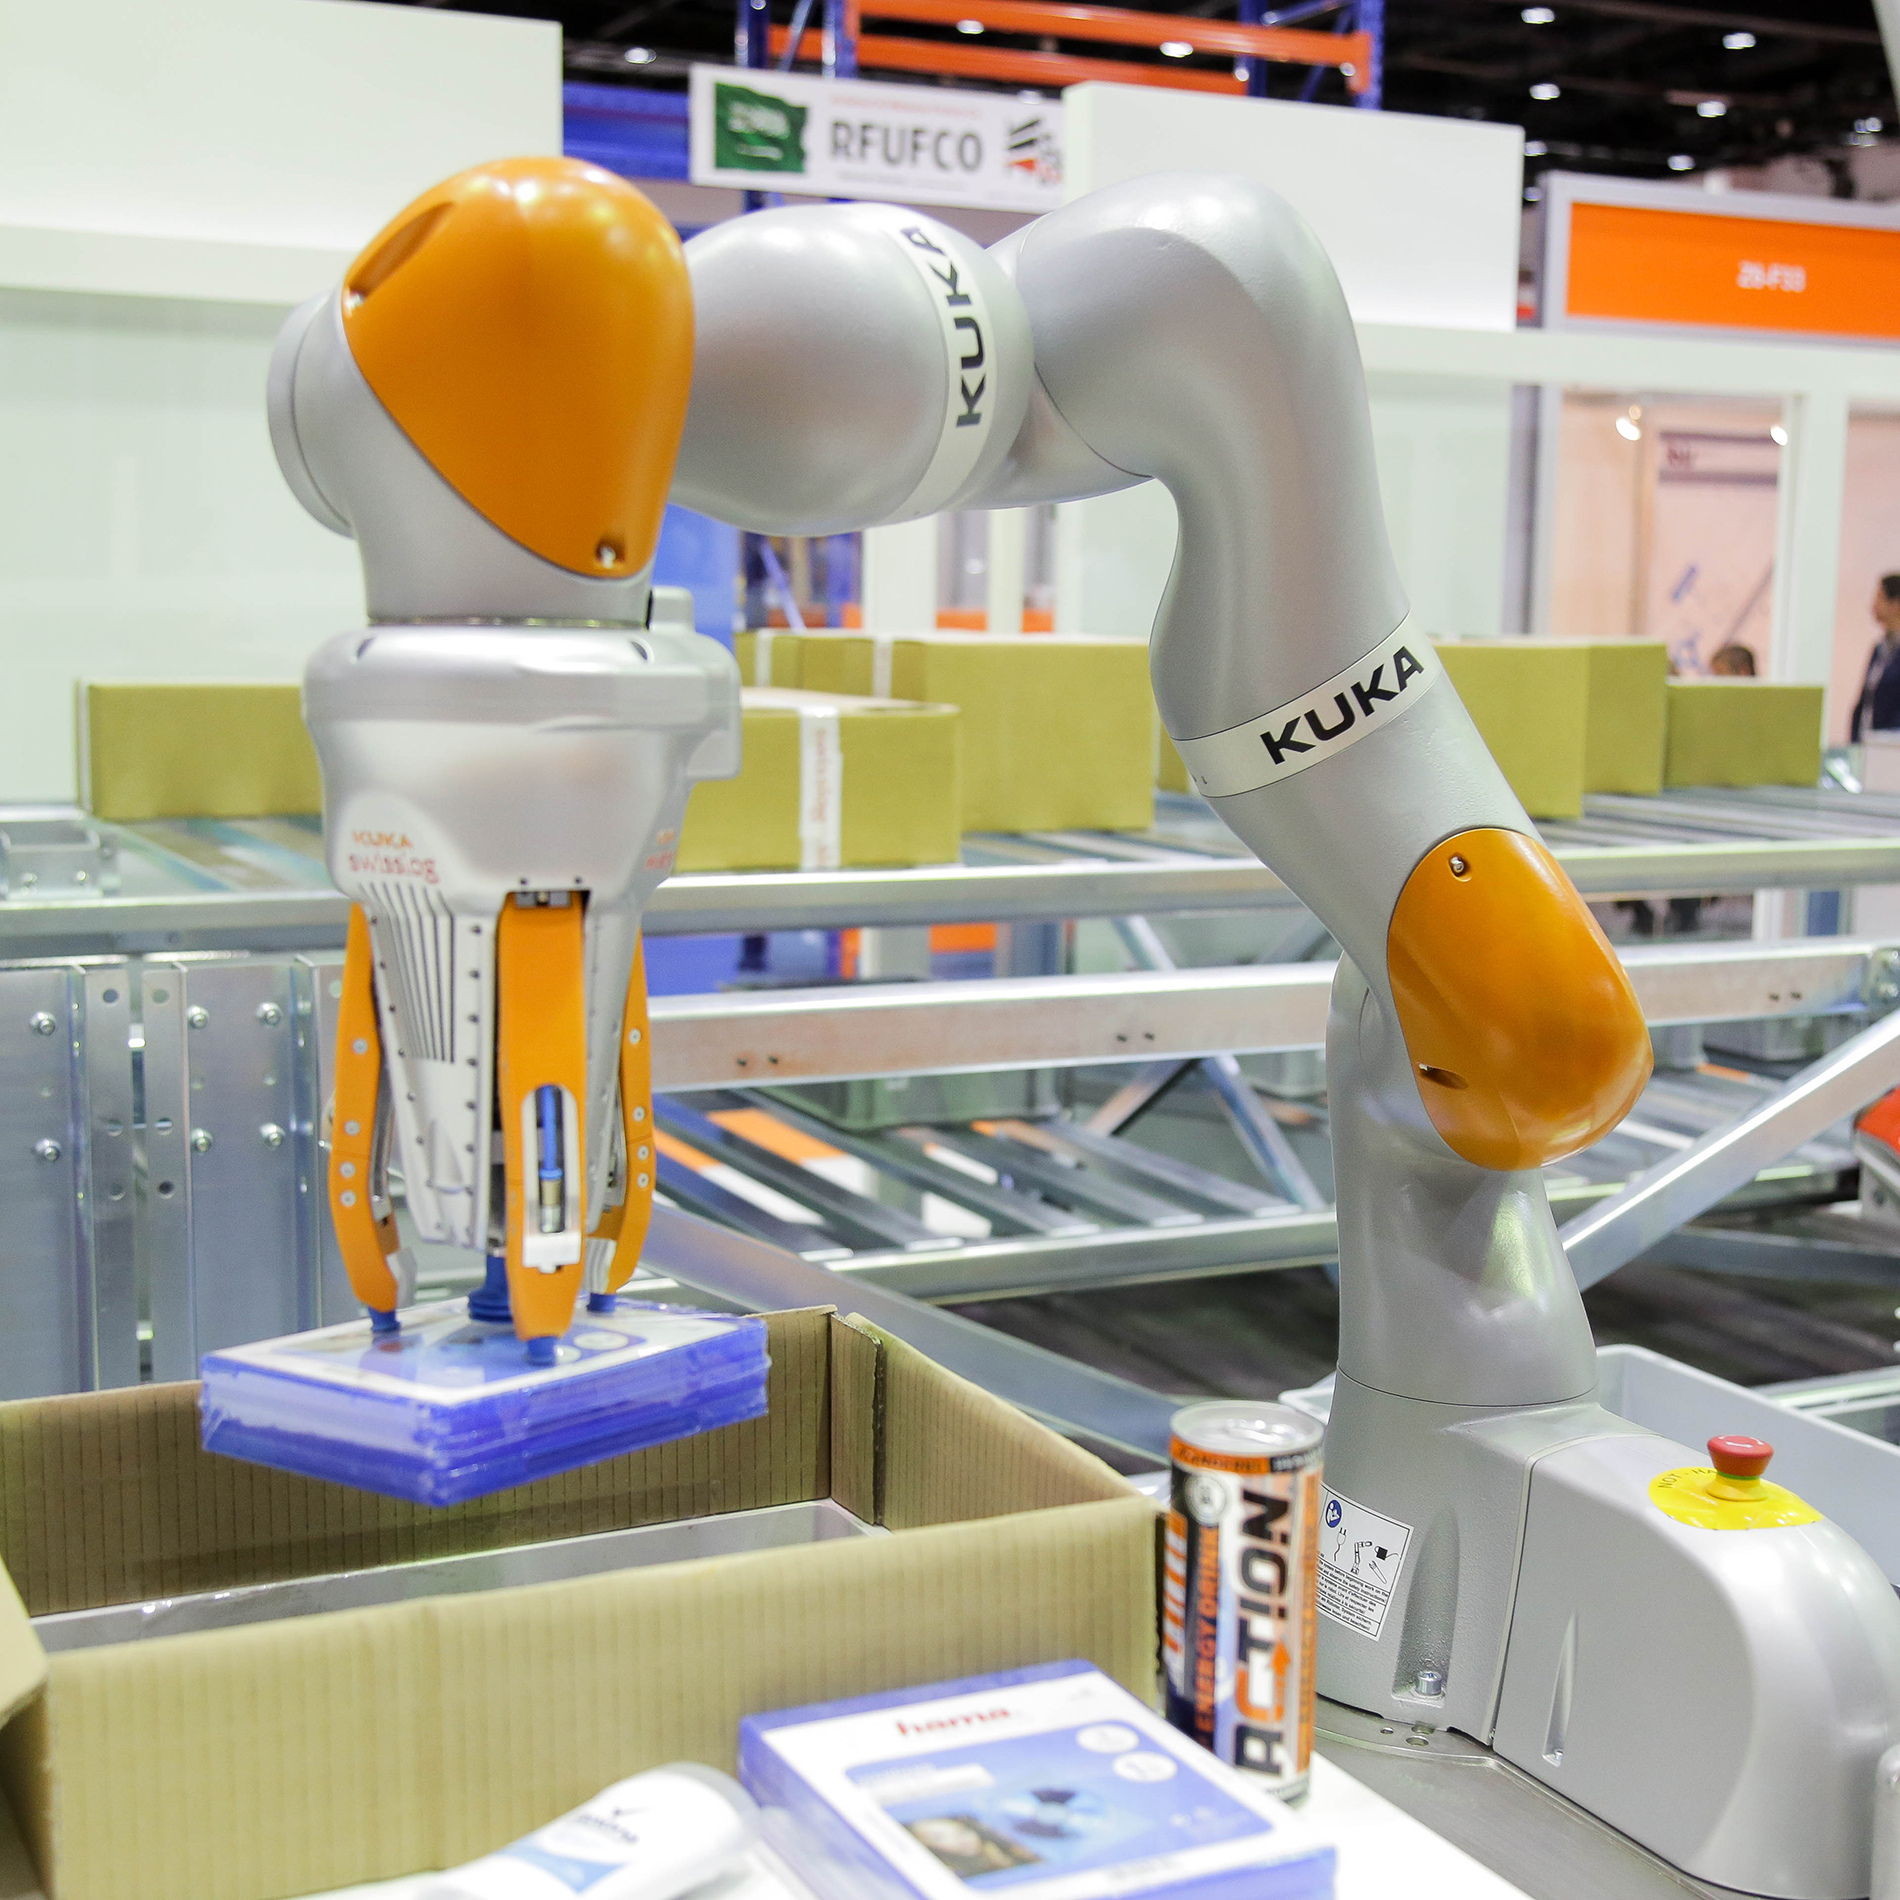 Display item at Materials Handling Middle East